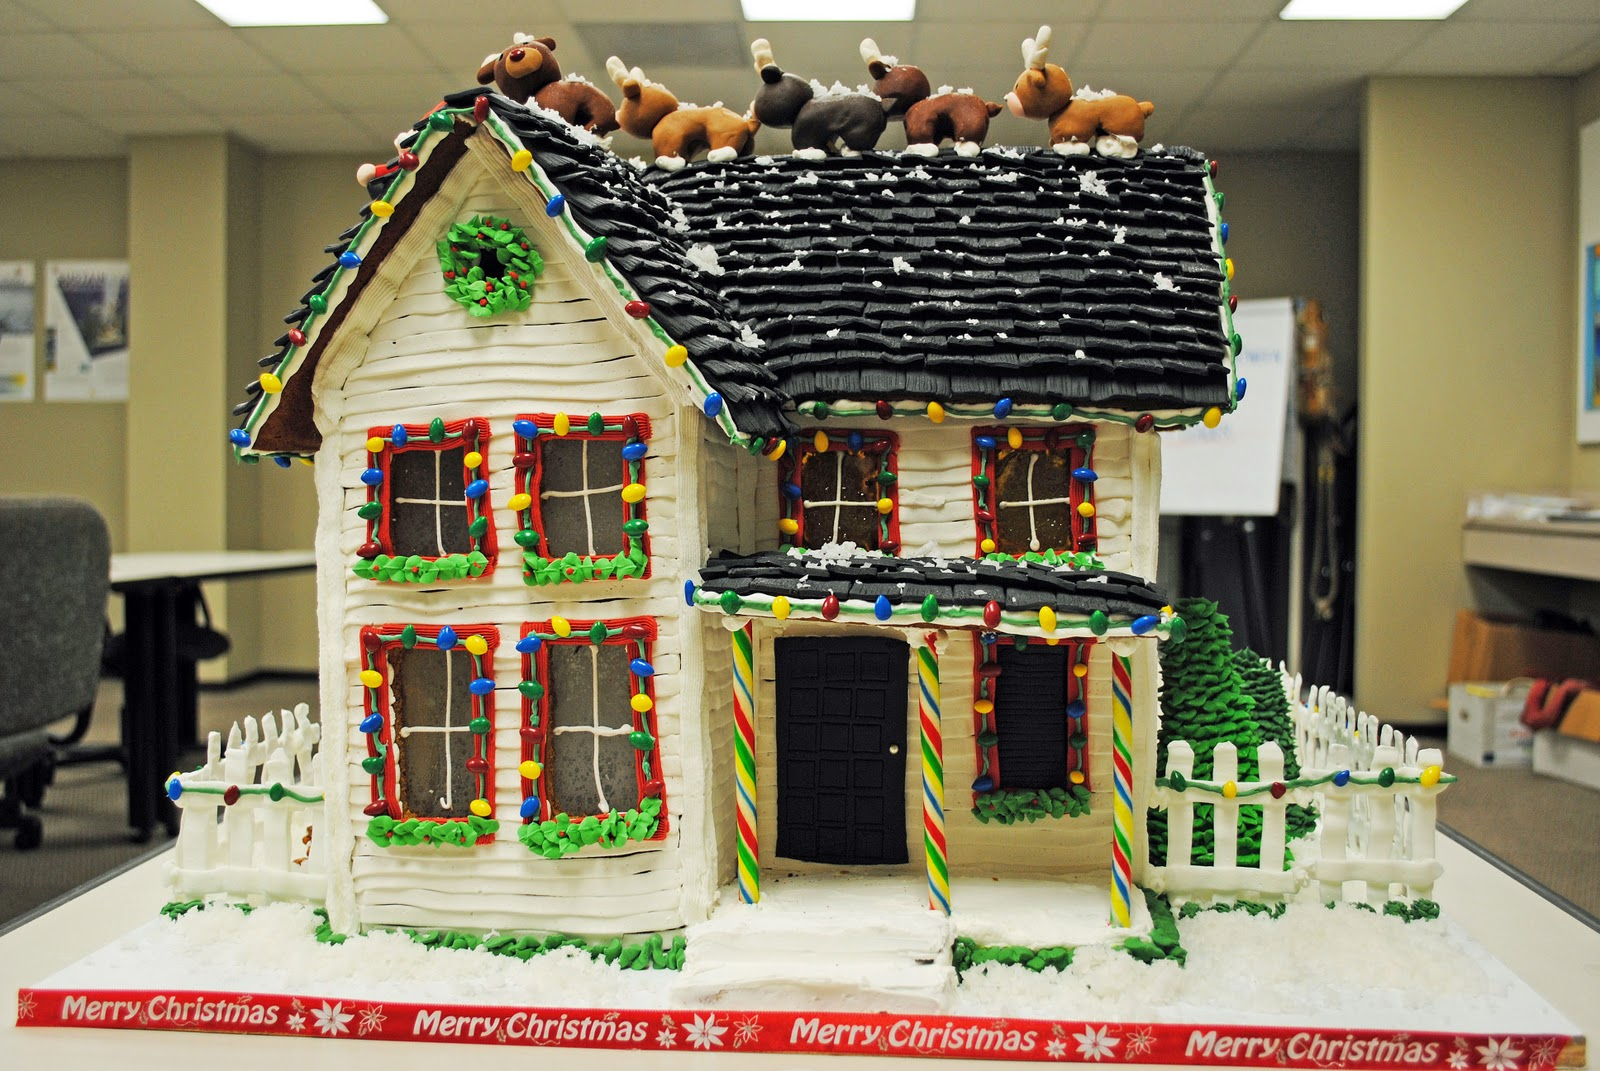 Howtocookthat cakes dessert chocolate gingerbread for How to make best gingerbread house